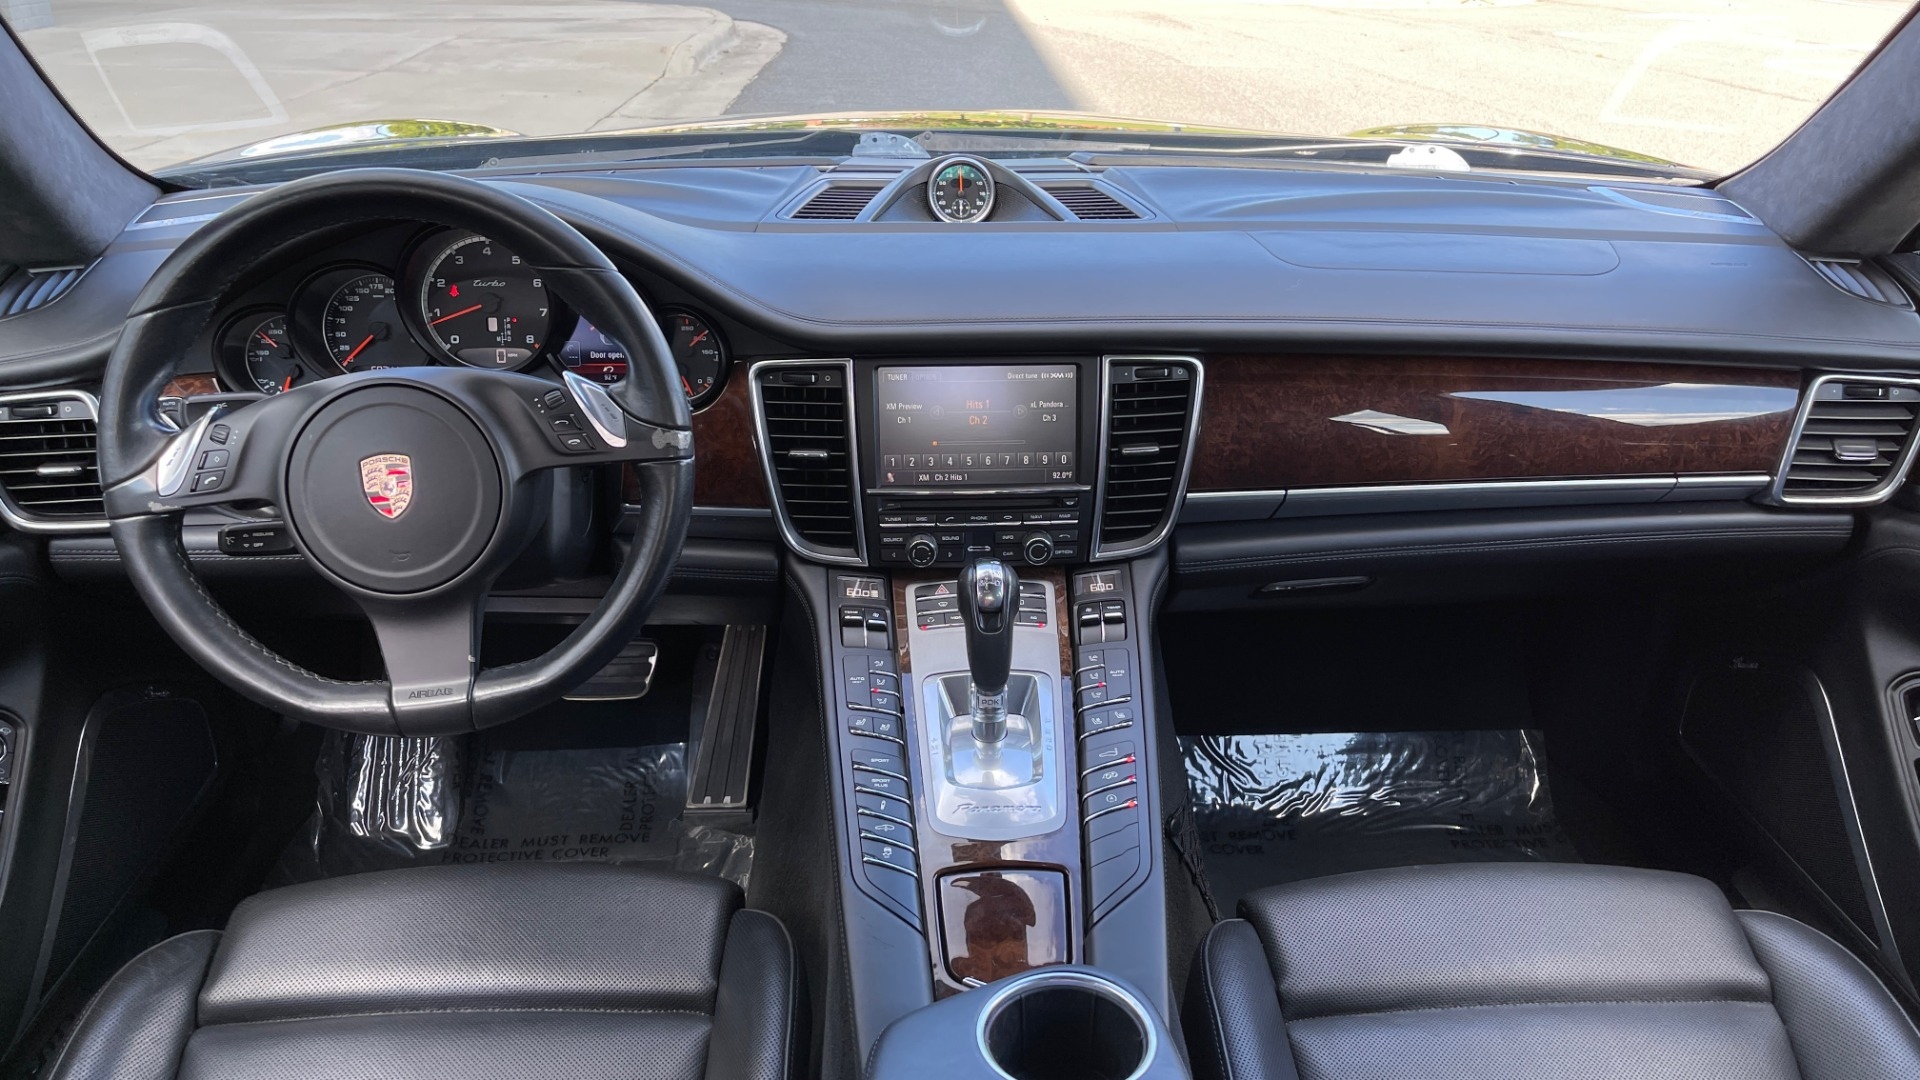 Used 2010 Porsche PANAMERA 4DR HB TURBO / SPORT CHRONO / BURMESTER / AUTO CLIMATE CONTROL for sale $40,995 at Formula Imports in Charlotte NC 28227 55